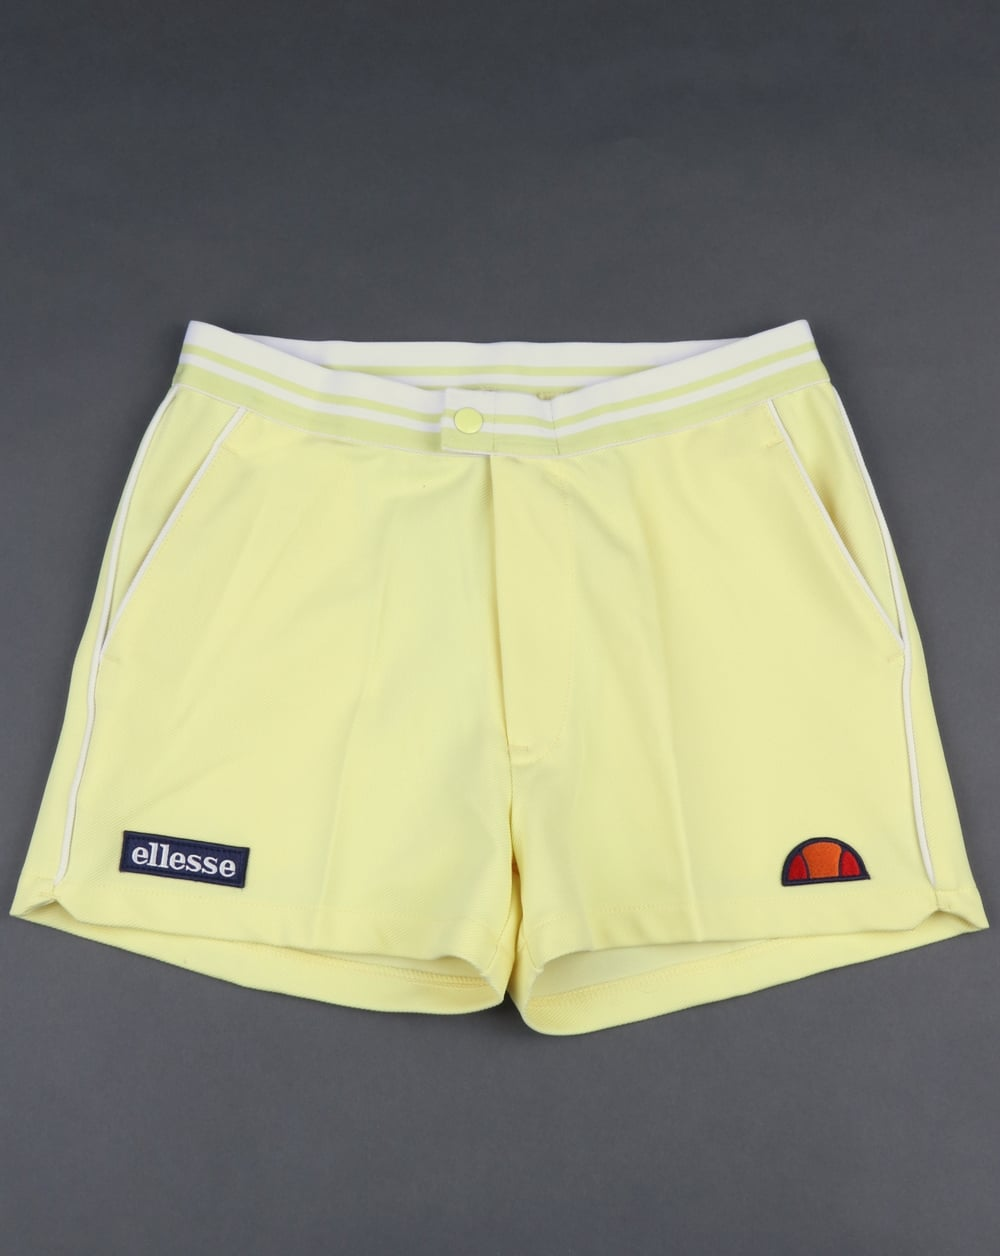 Buy Here Pay Here Ma >> Ellesse 80s Tennis Shorts Yellow, Piping | 80s casual classics